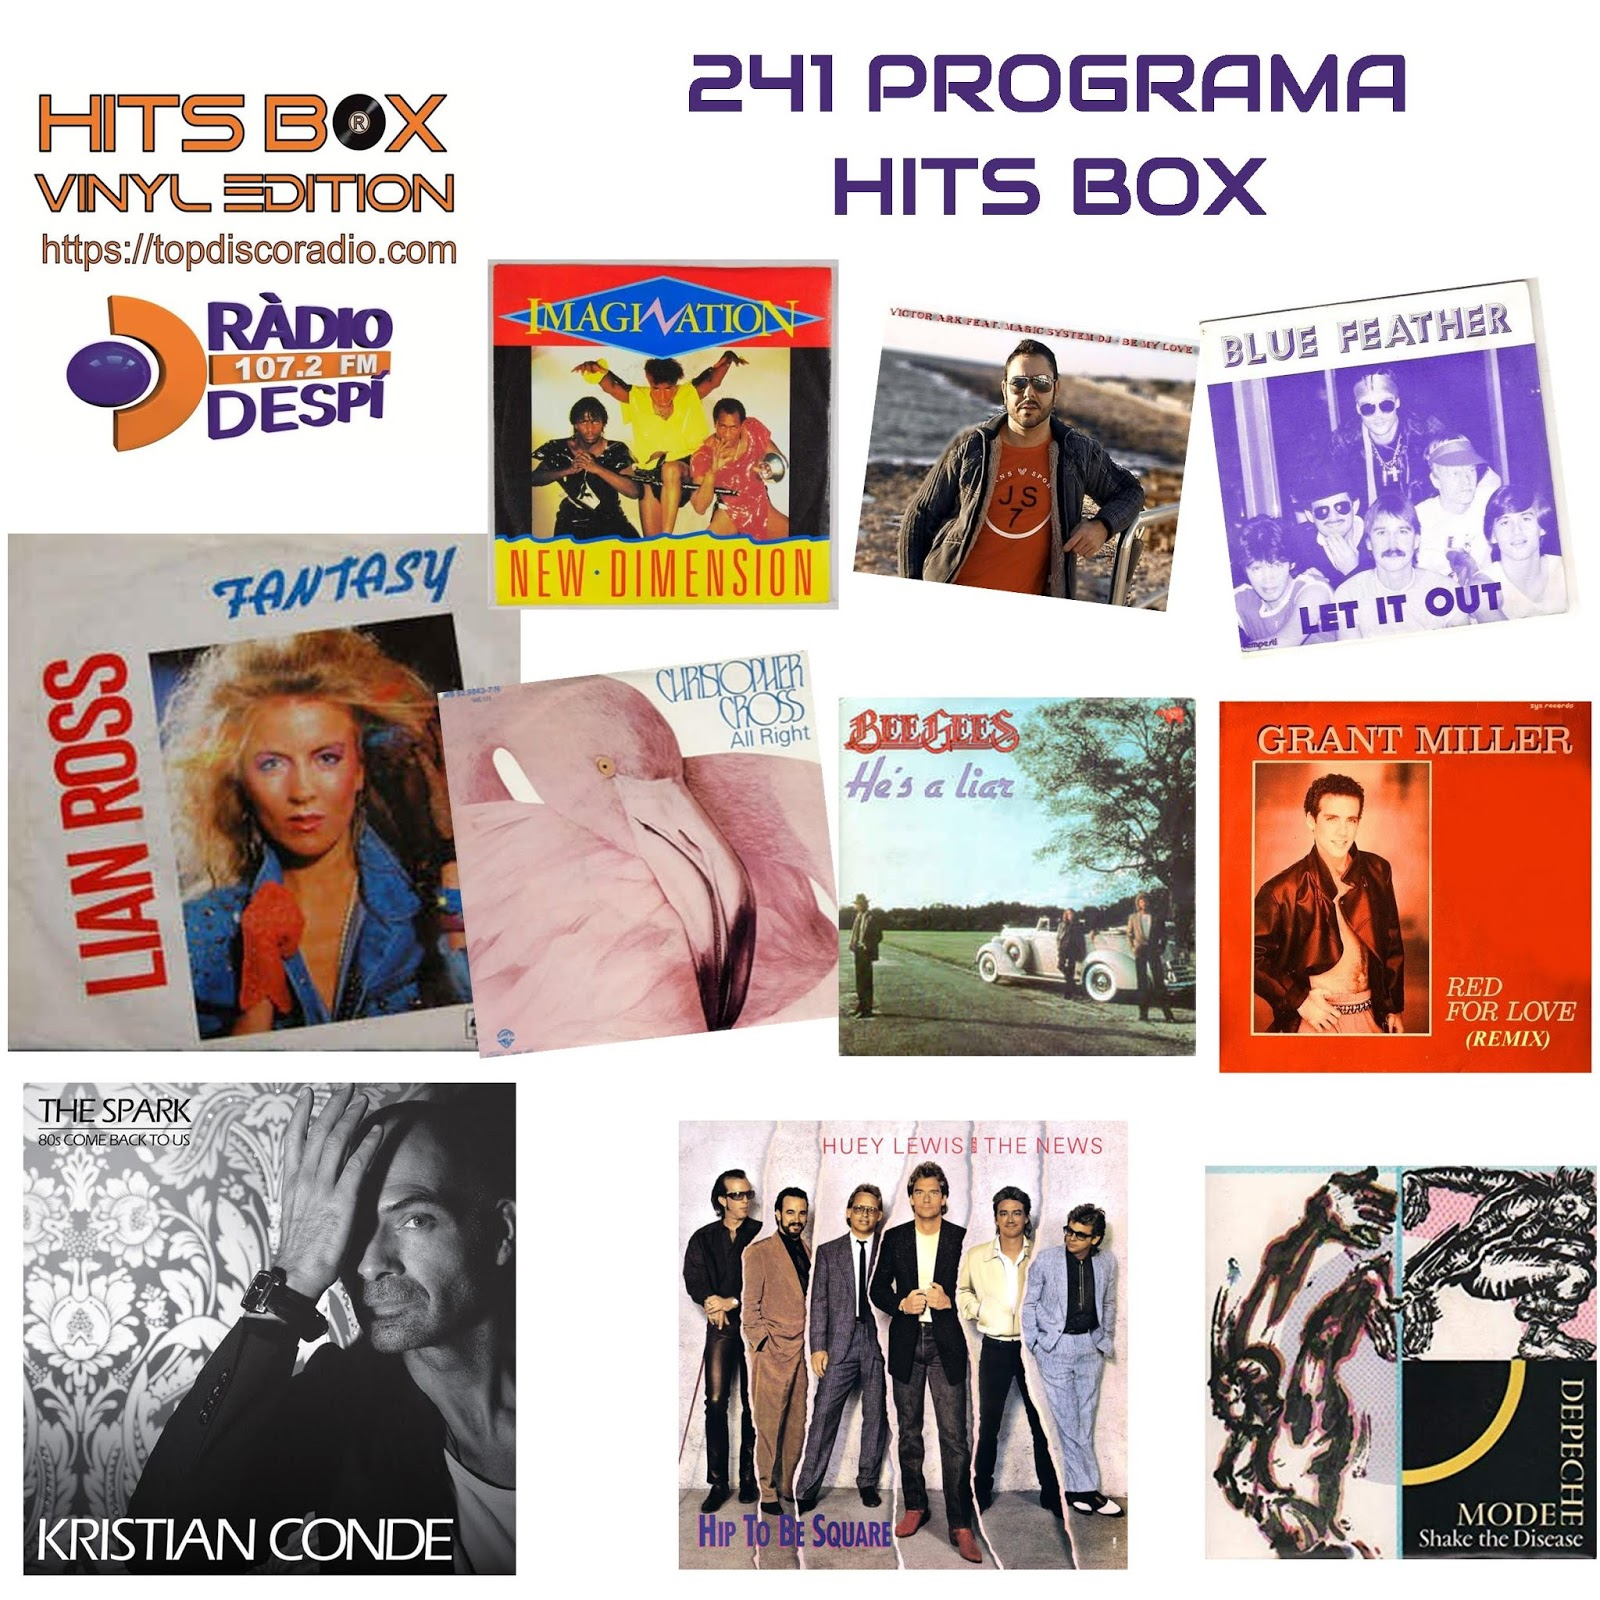 241 Programa Hits Box Vinyl Edition